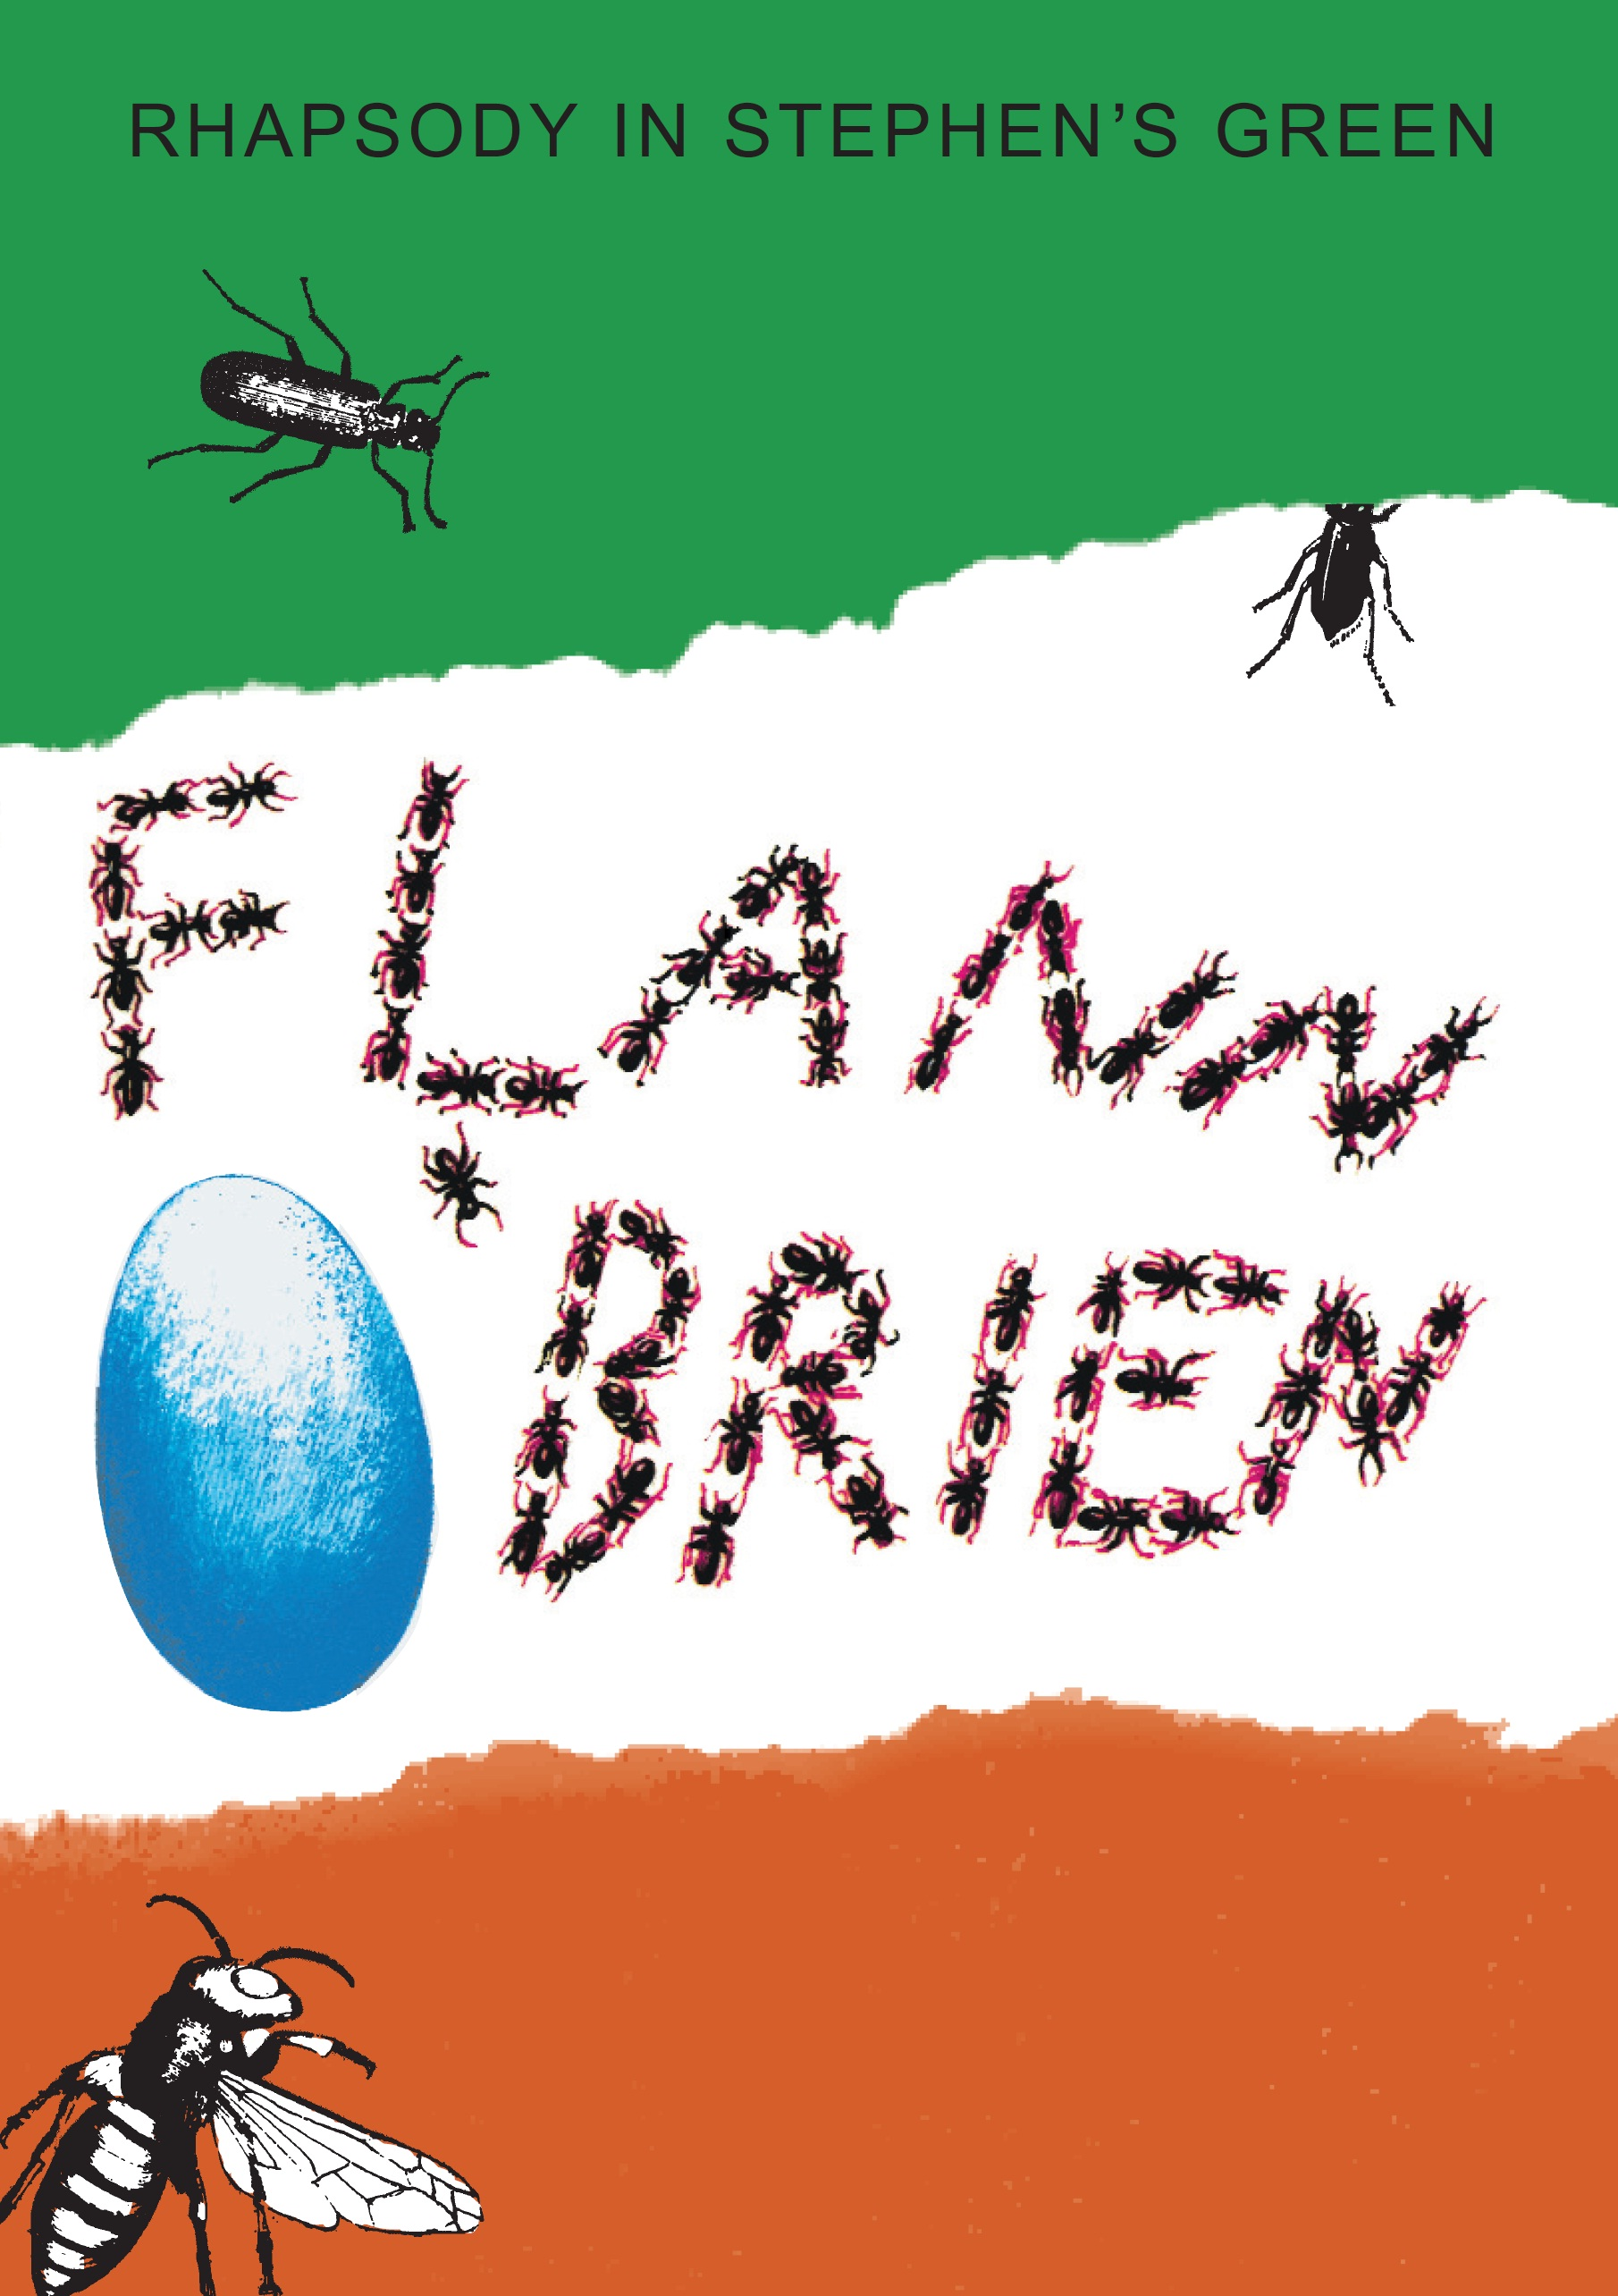 Rhapsody in Stephen's Green/The Insect Play